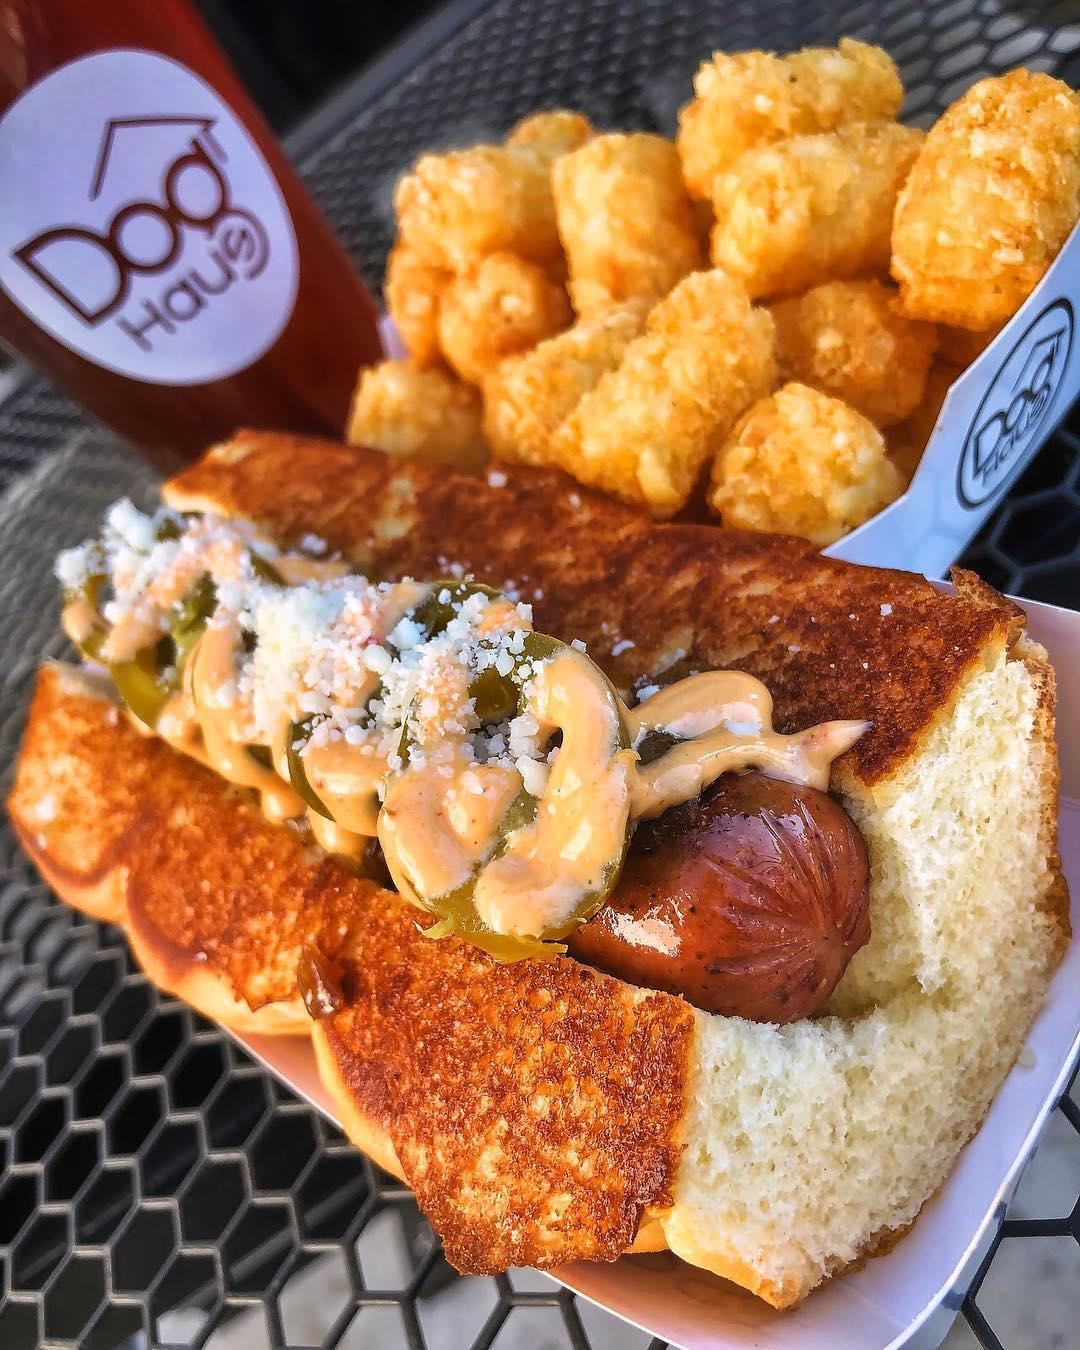 Dog Haus creates hand-crafted hormone- and antibiotic-free hot dogs, sausages, burgers and one Bad Mutha Clucka, all served on King's Hawaiian rolls. Crush one, then wash it down with one of our local craft beers.